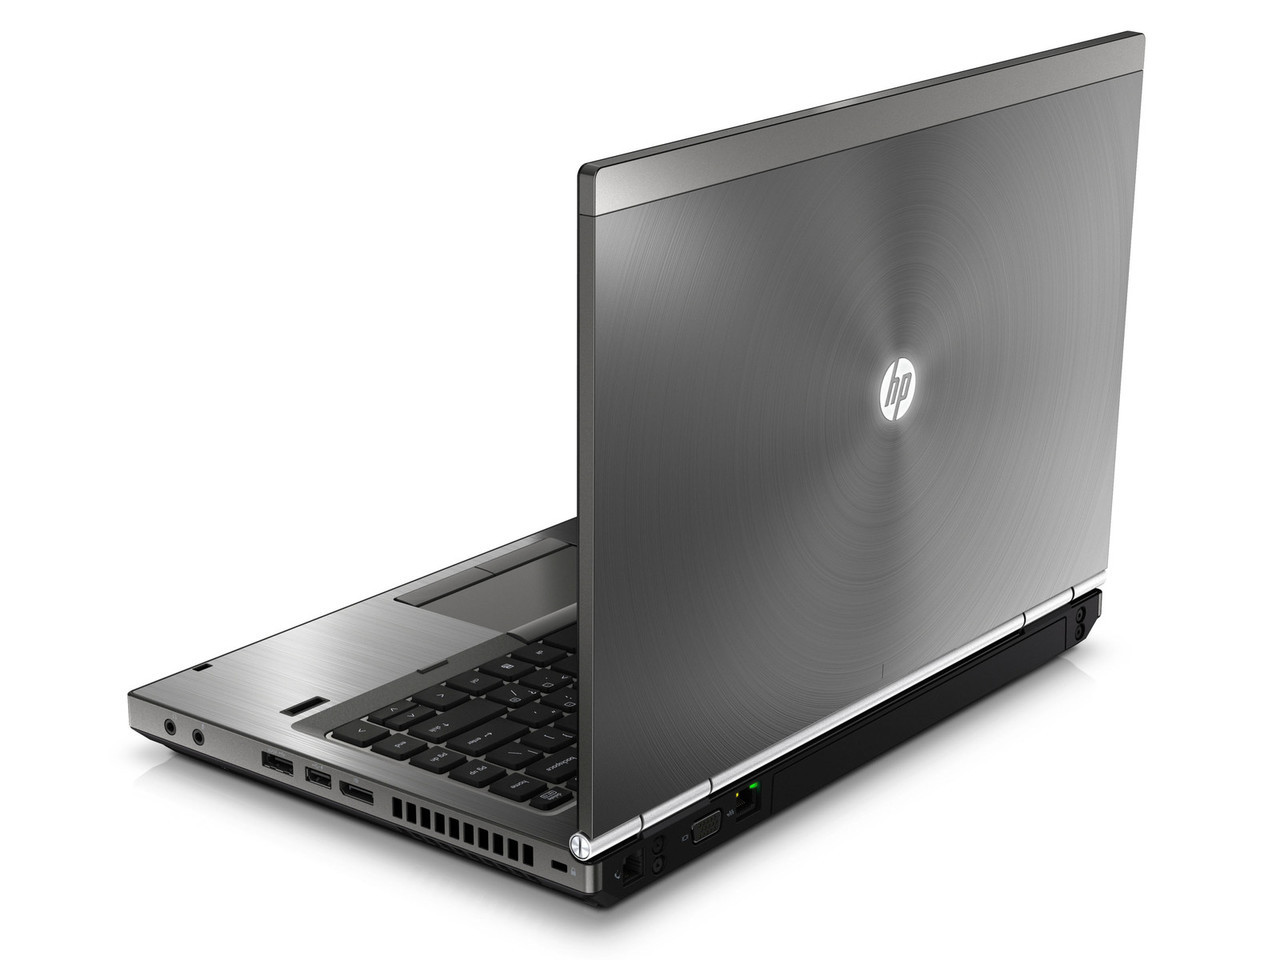 HP Compaq Elitebook 8460p Laptop Core i5 2.3GHz, 4GB Ram, 320GB HDD, DVD-RW, Windows 10 Pro 64 Notebook